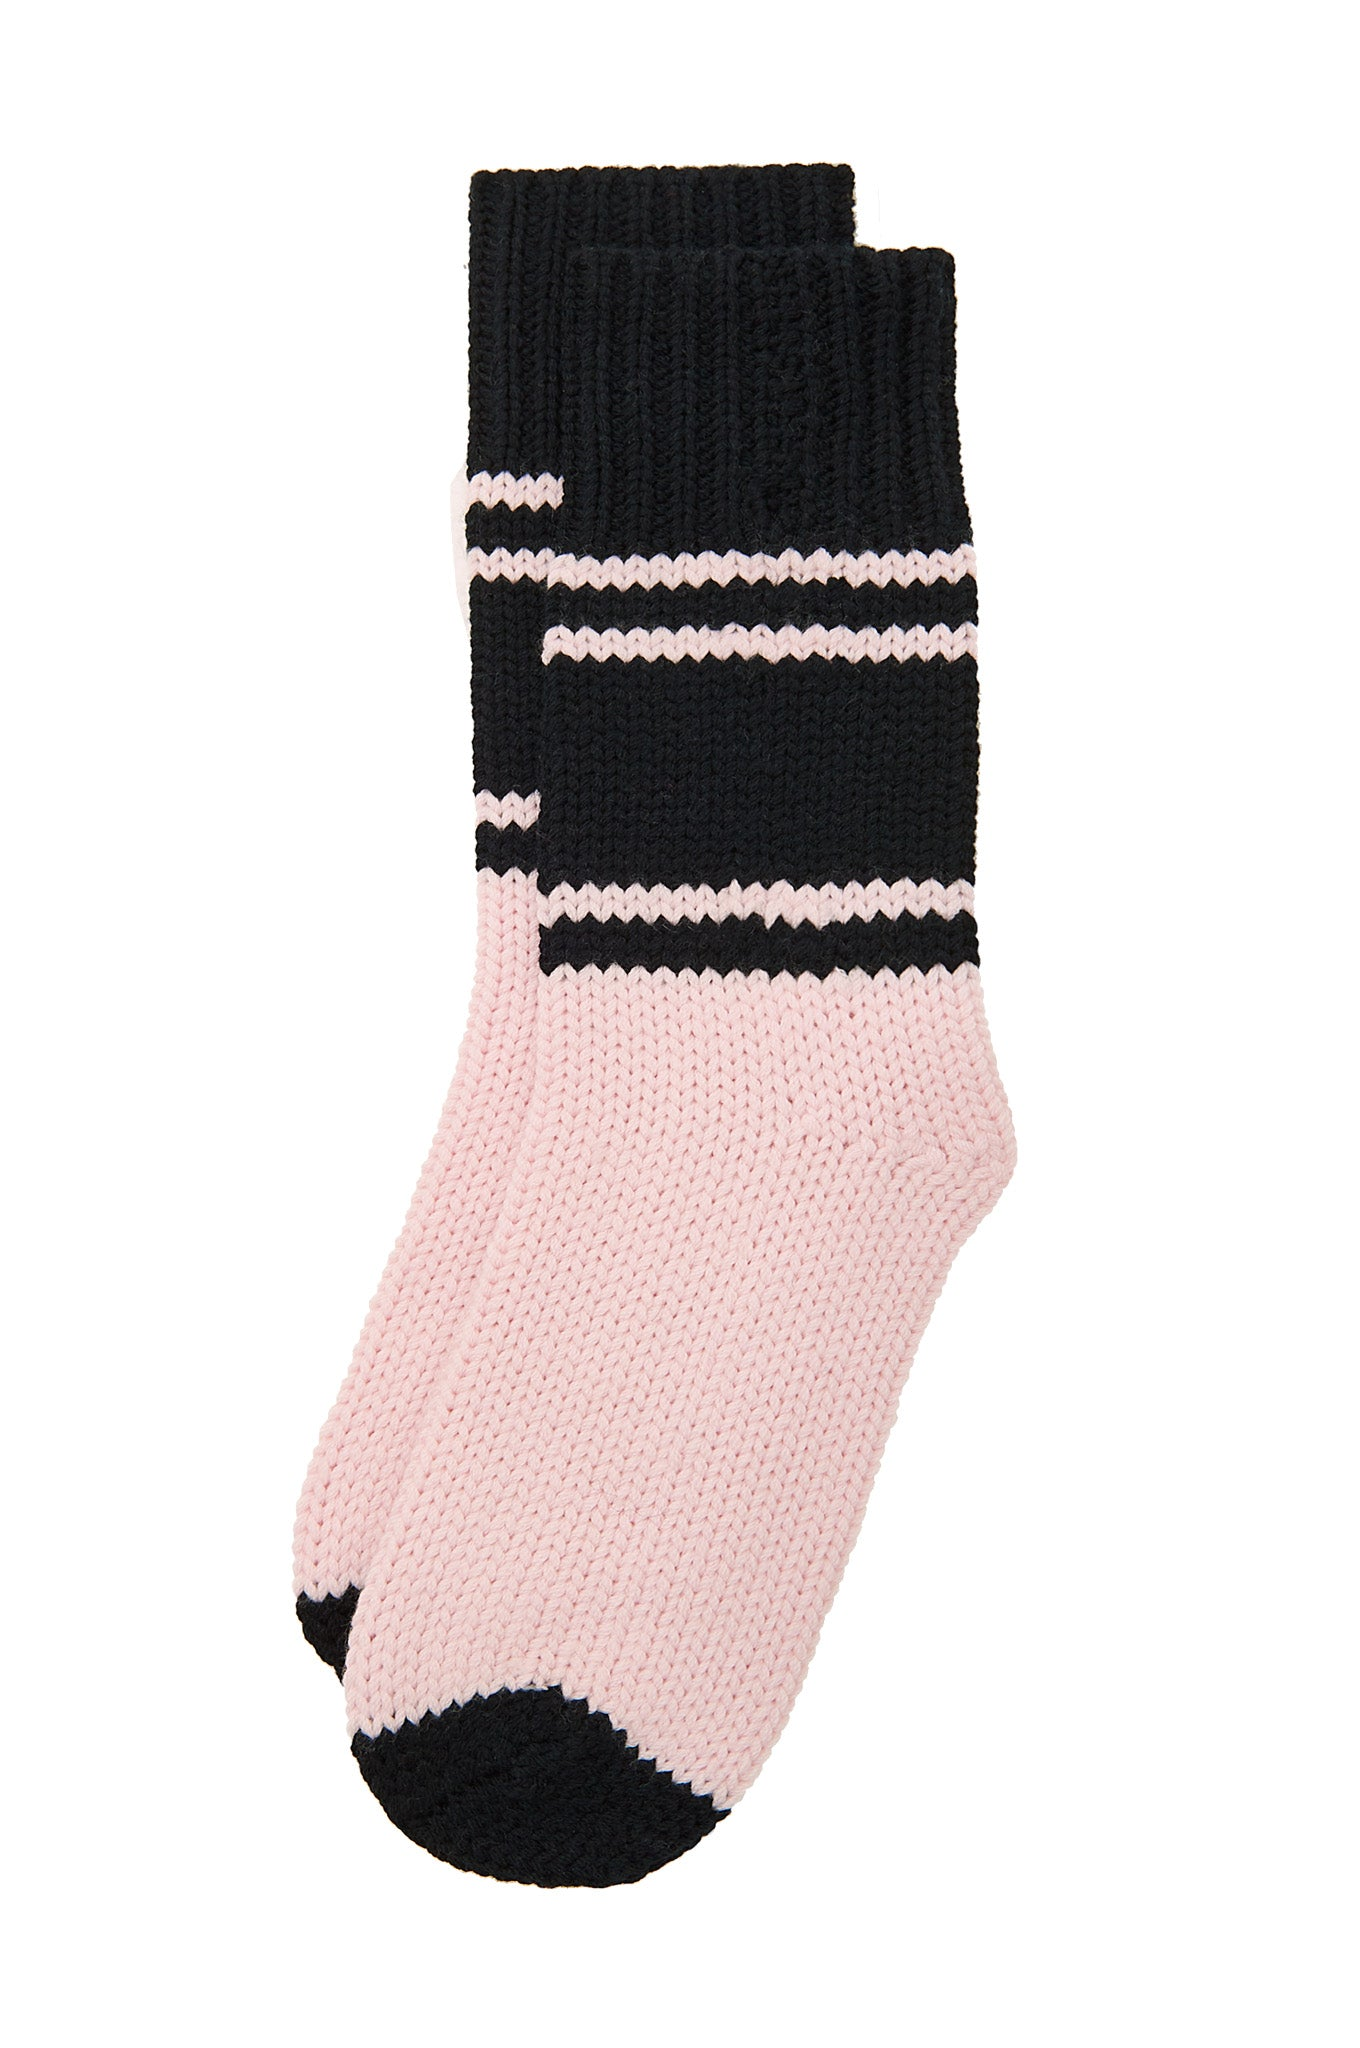 CABIN Black & Shell Merino Wool Socks